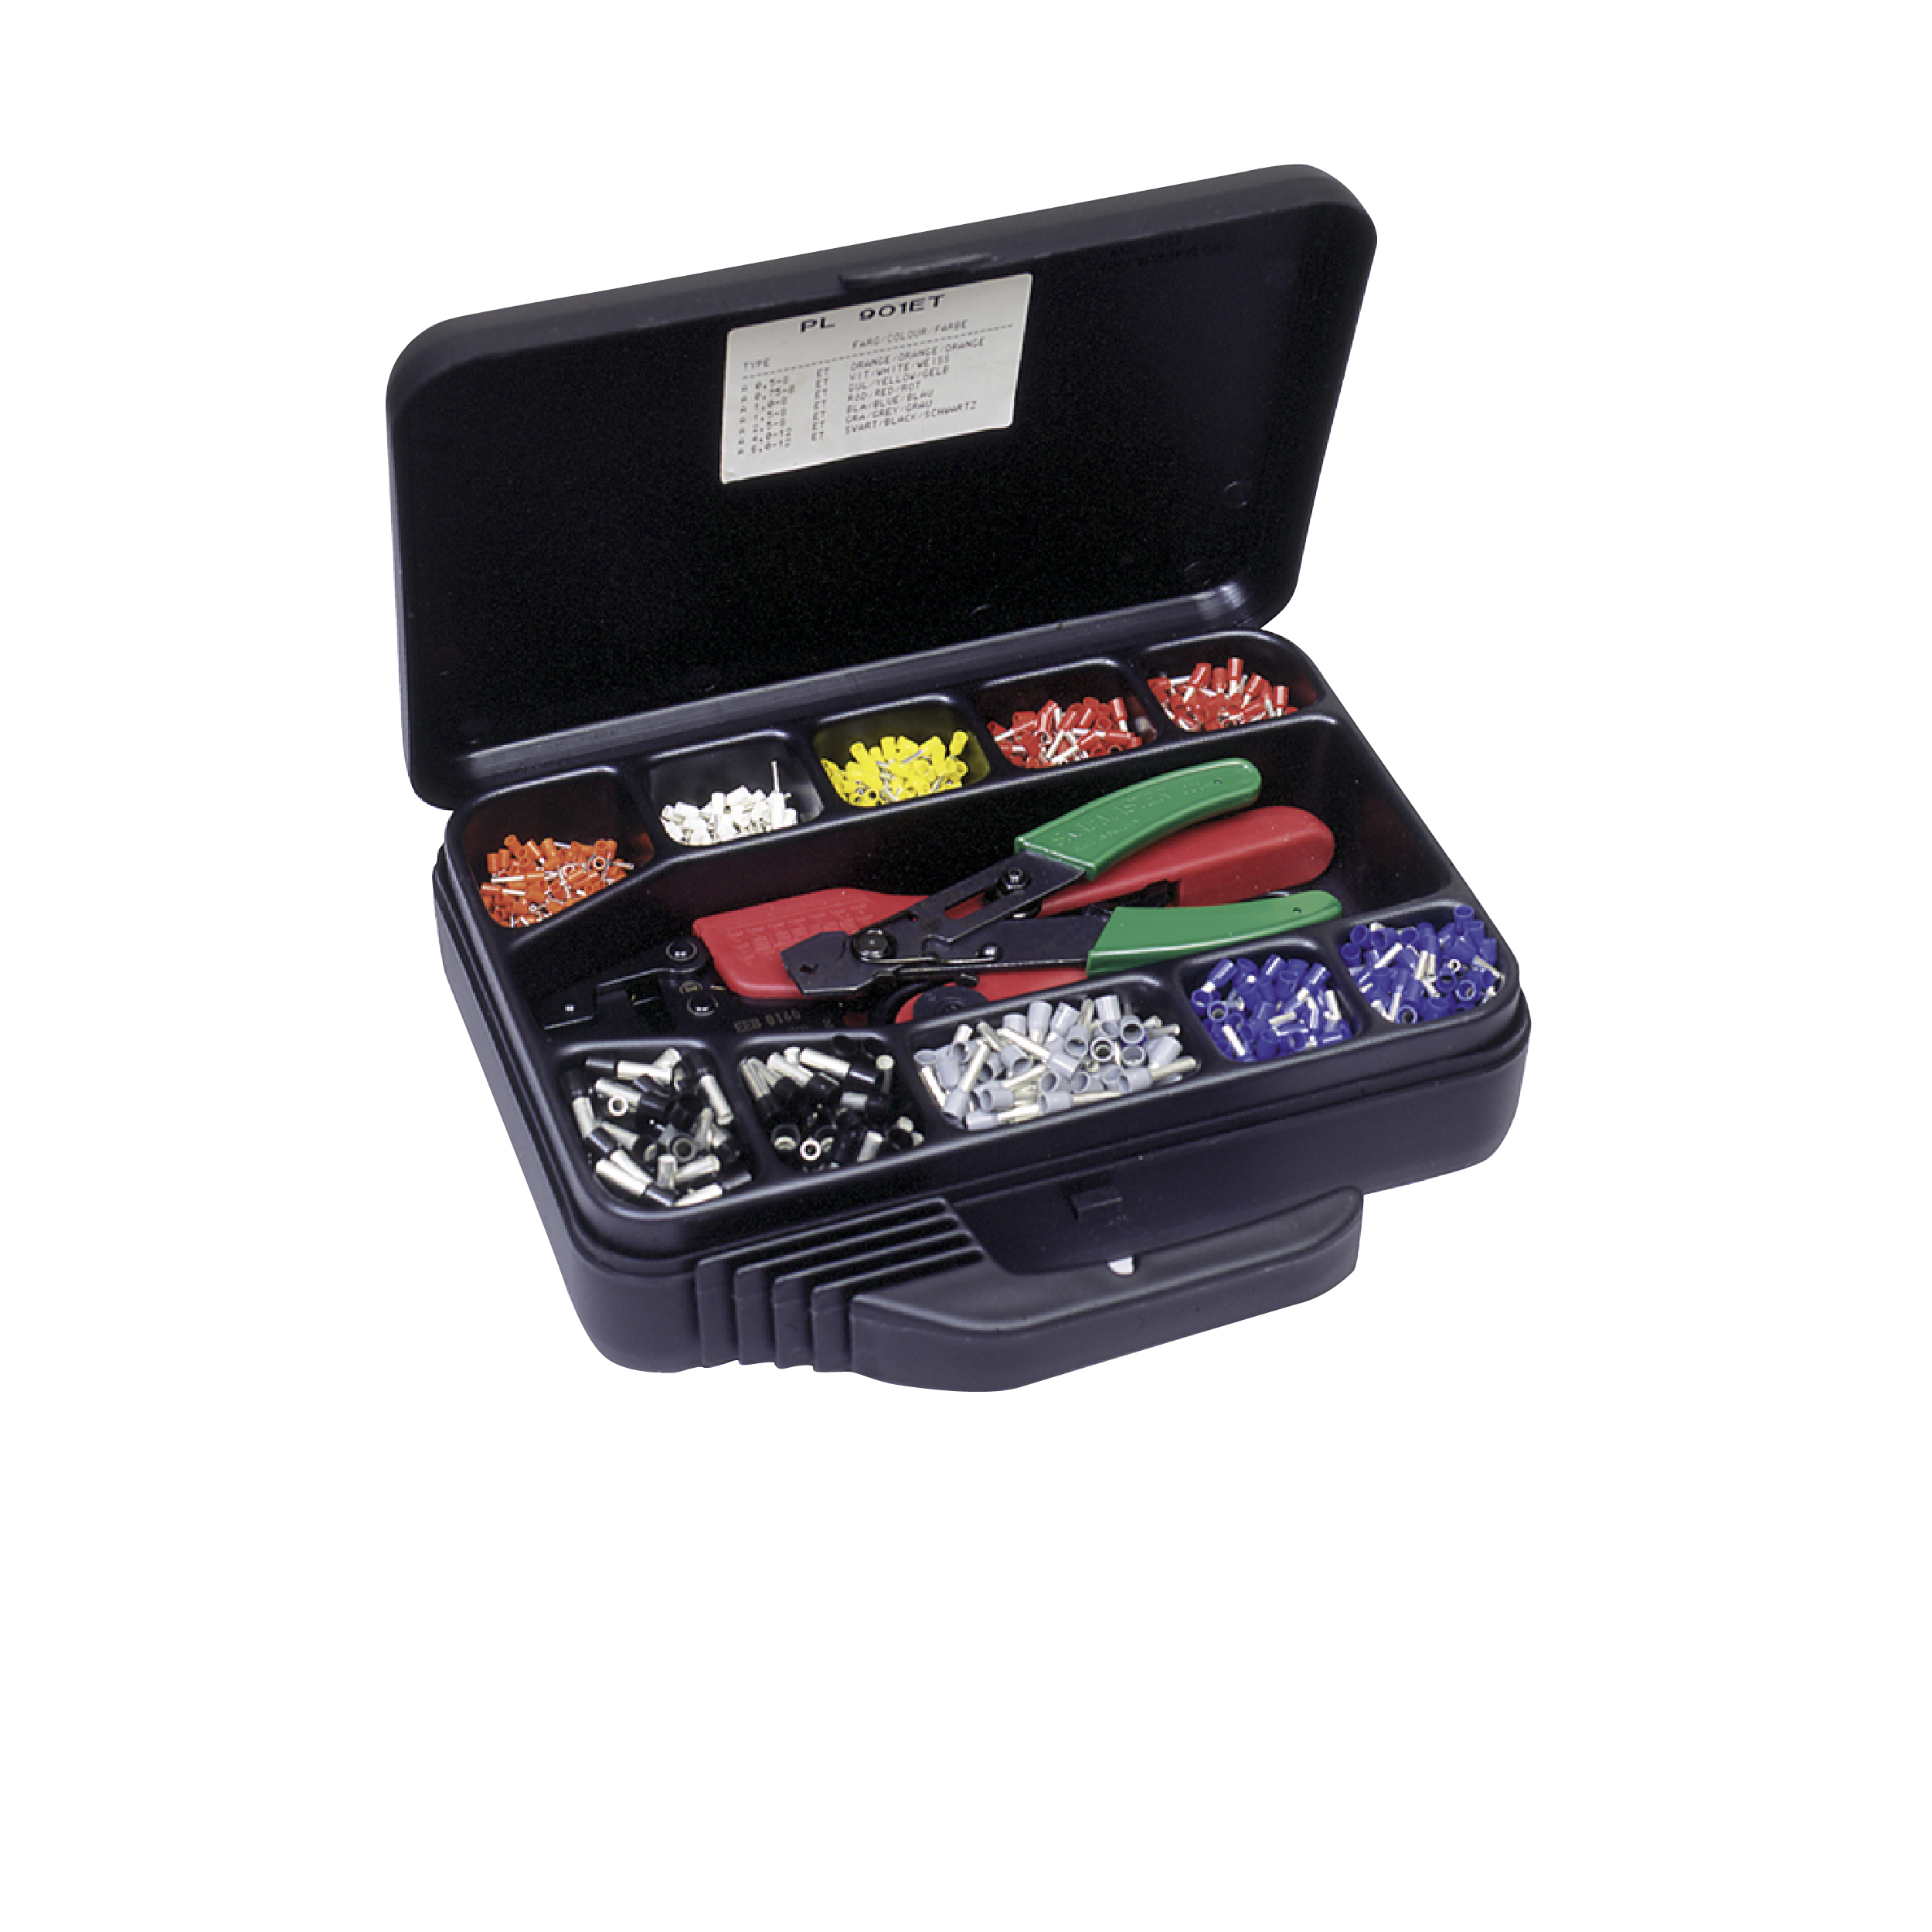 Elpress Assortment Box PL900ET